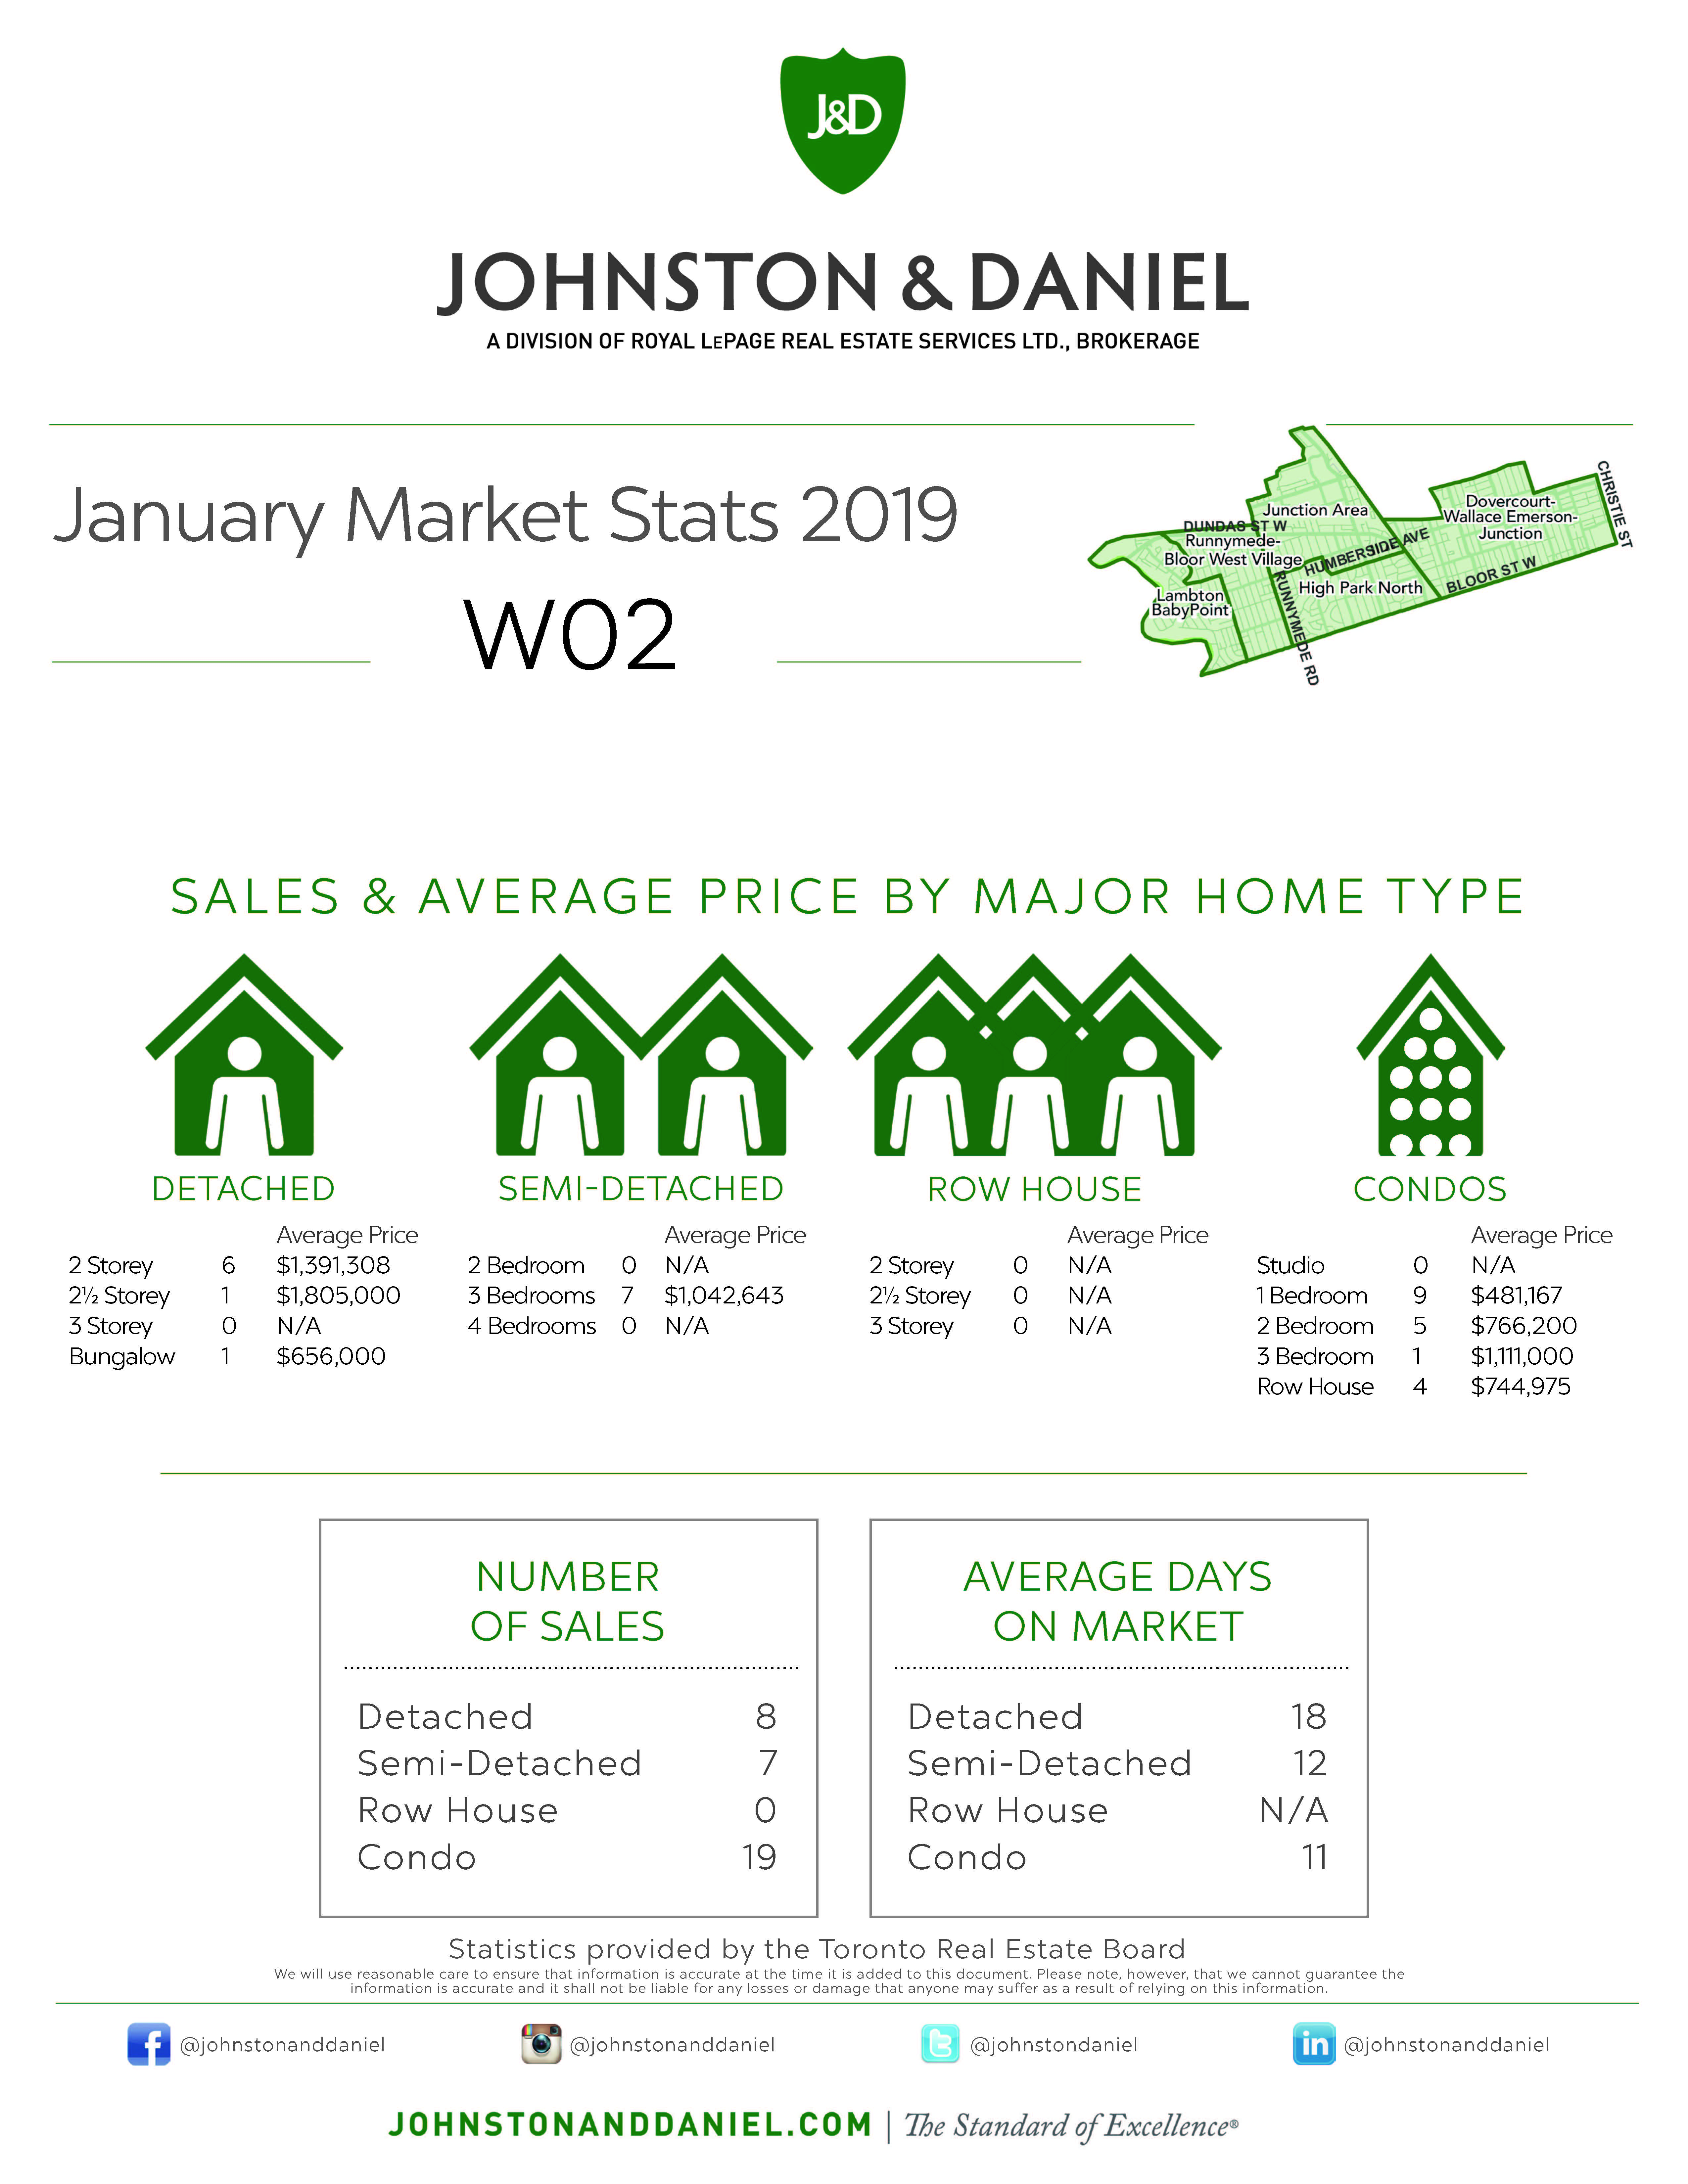 Toronto Real Estate Sales Statistics January 2019 for Area W02